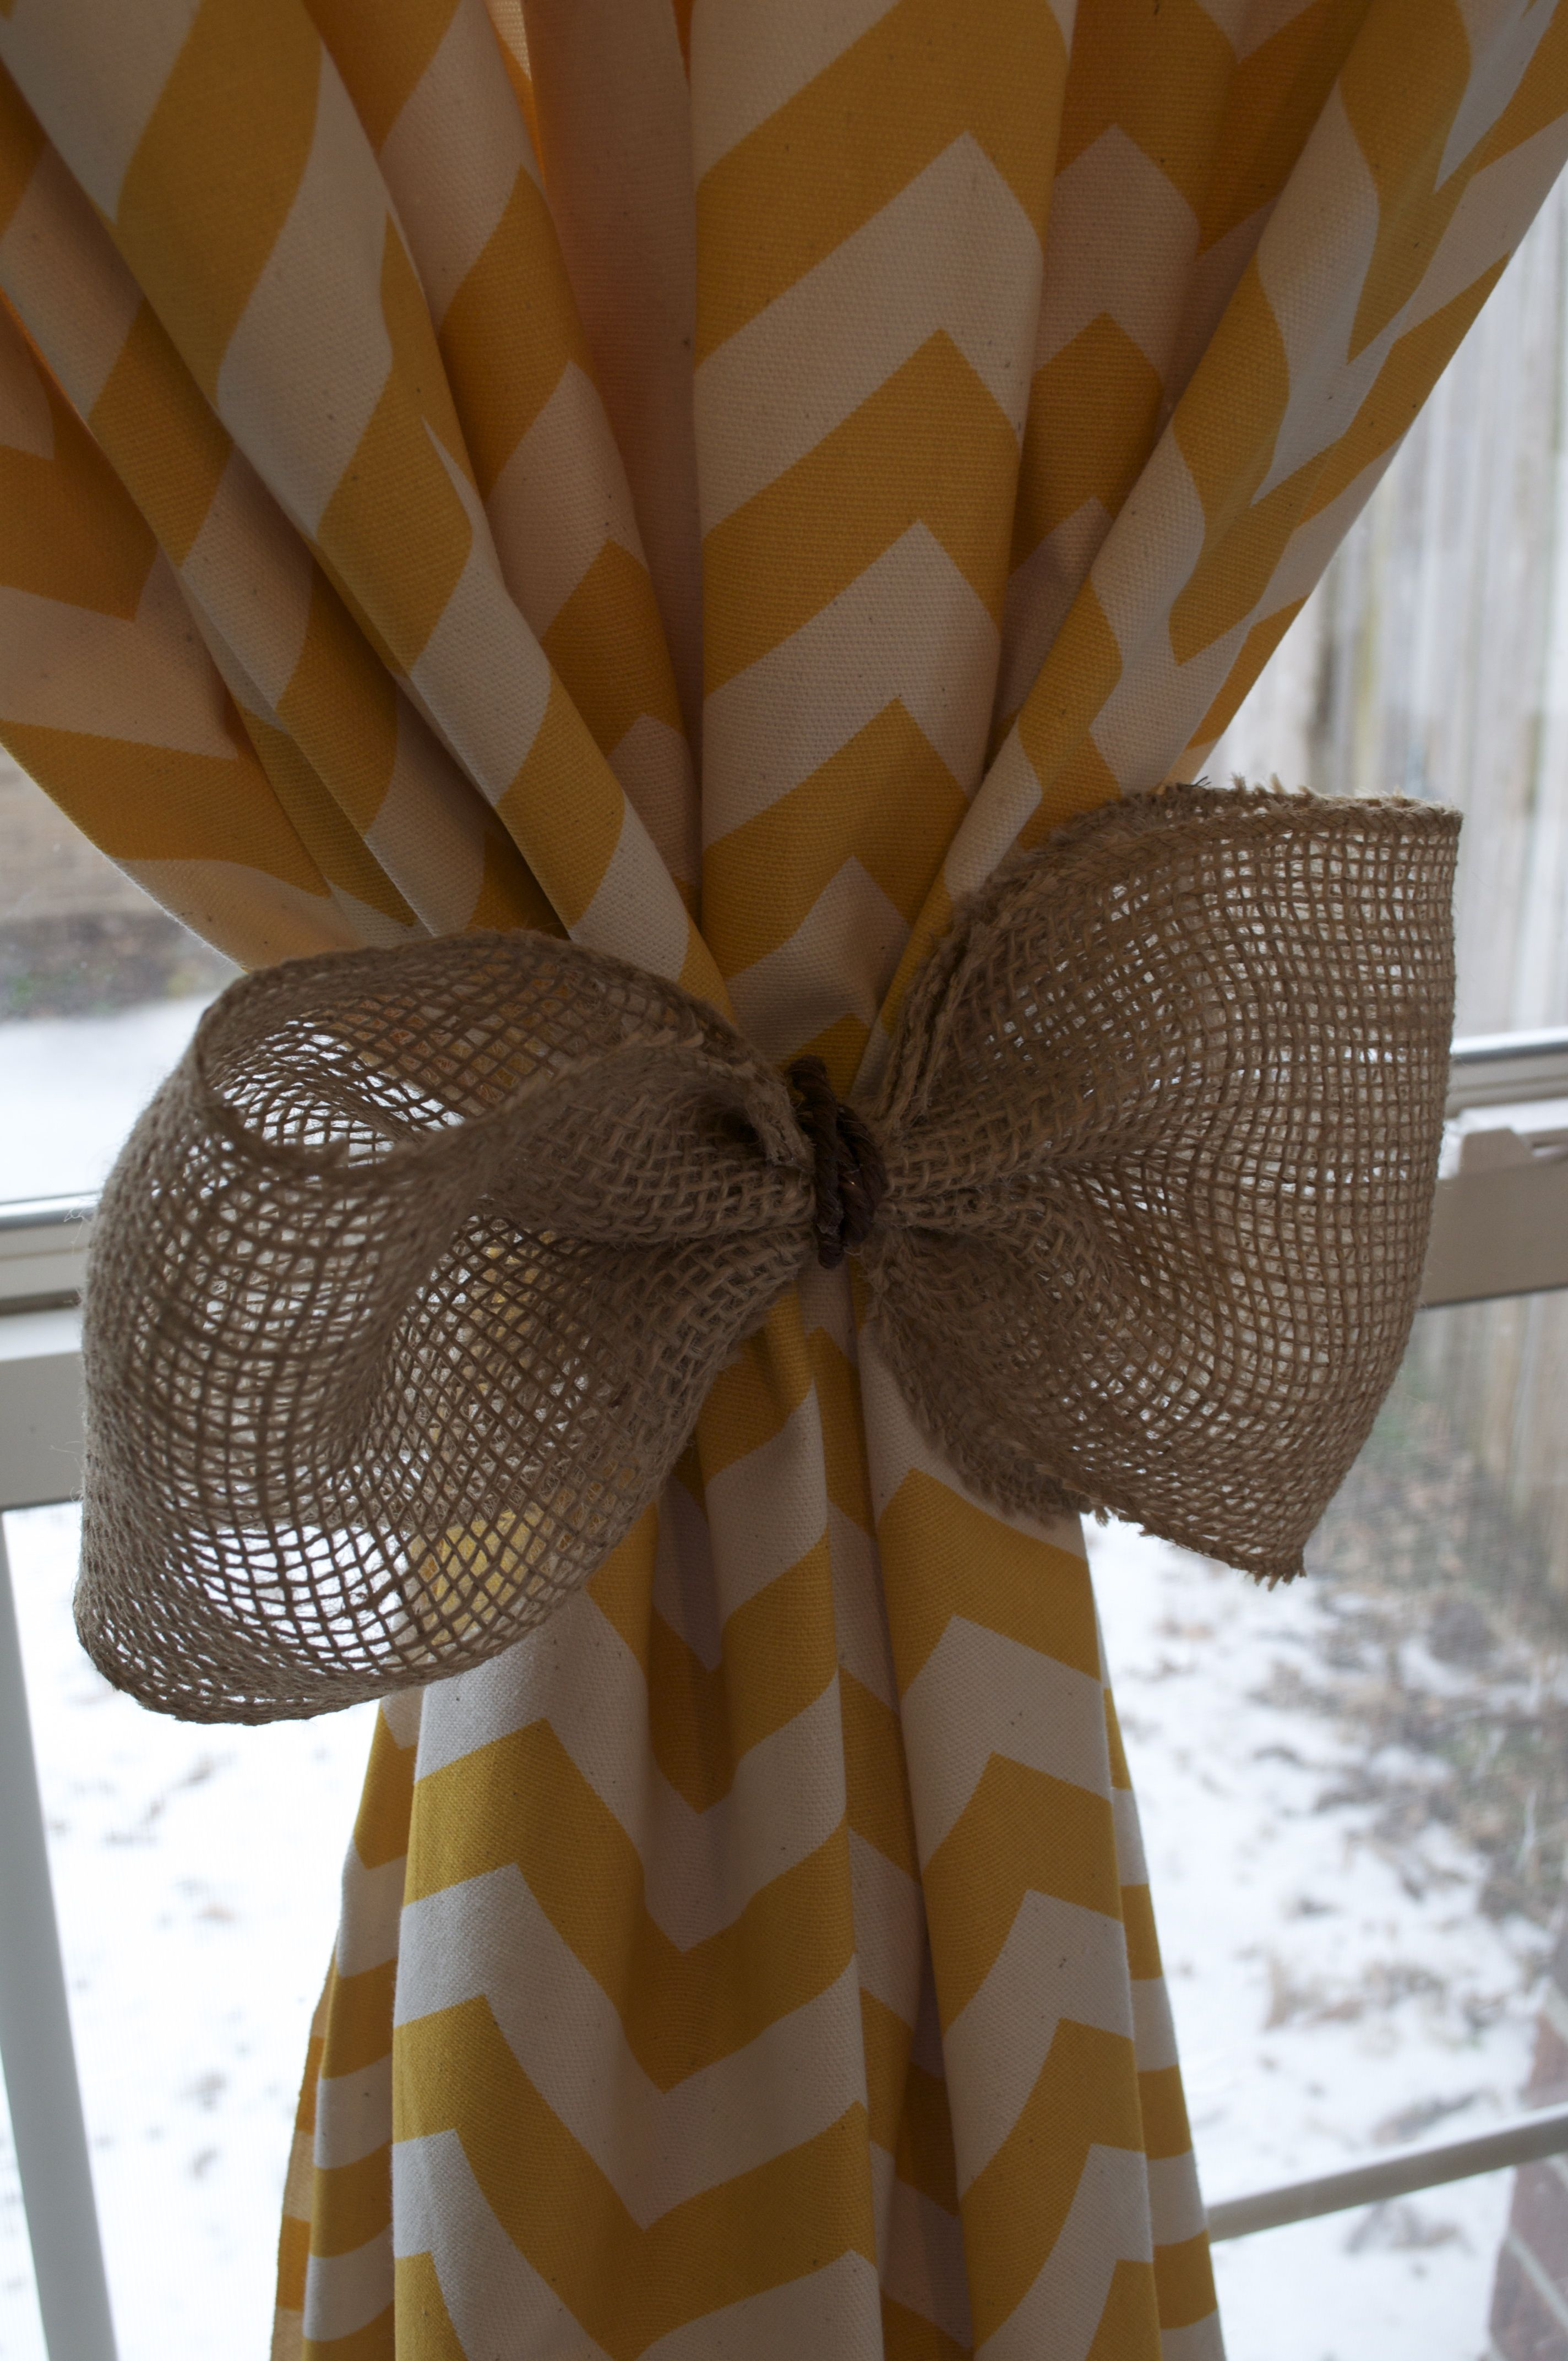 Burlap kitchen curtain ideas - Cool Yellow Chevron Curtains Patterns And Burlap Curtain Tie Backs With Clear Glass Windows White Wooden